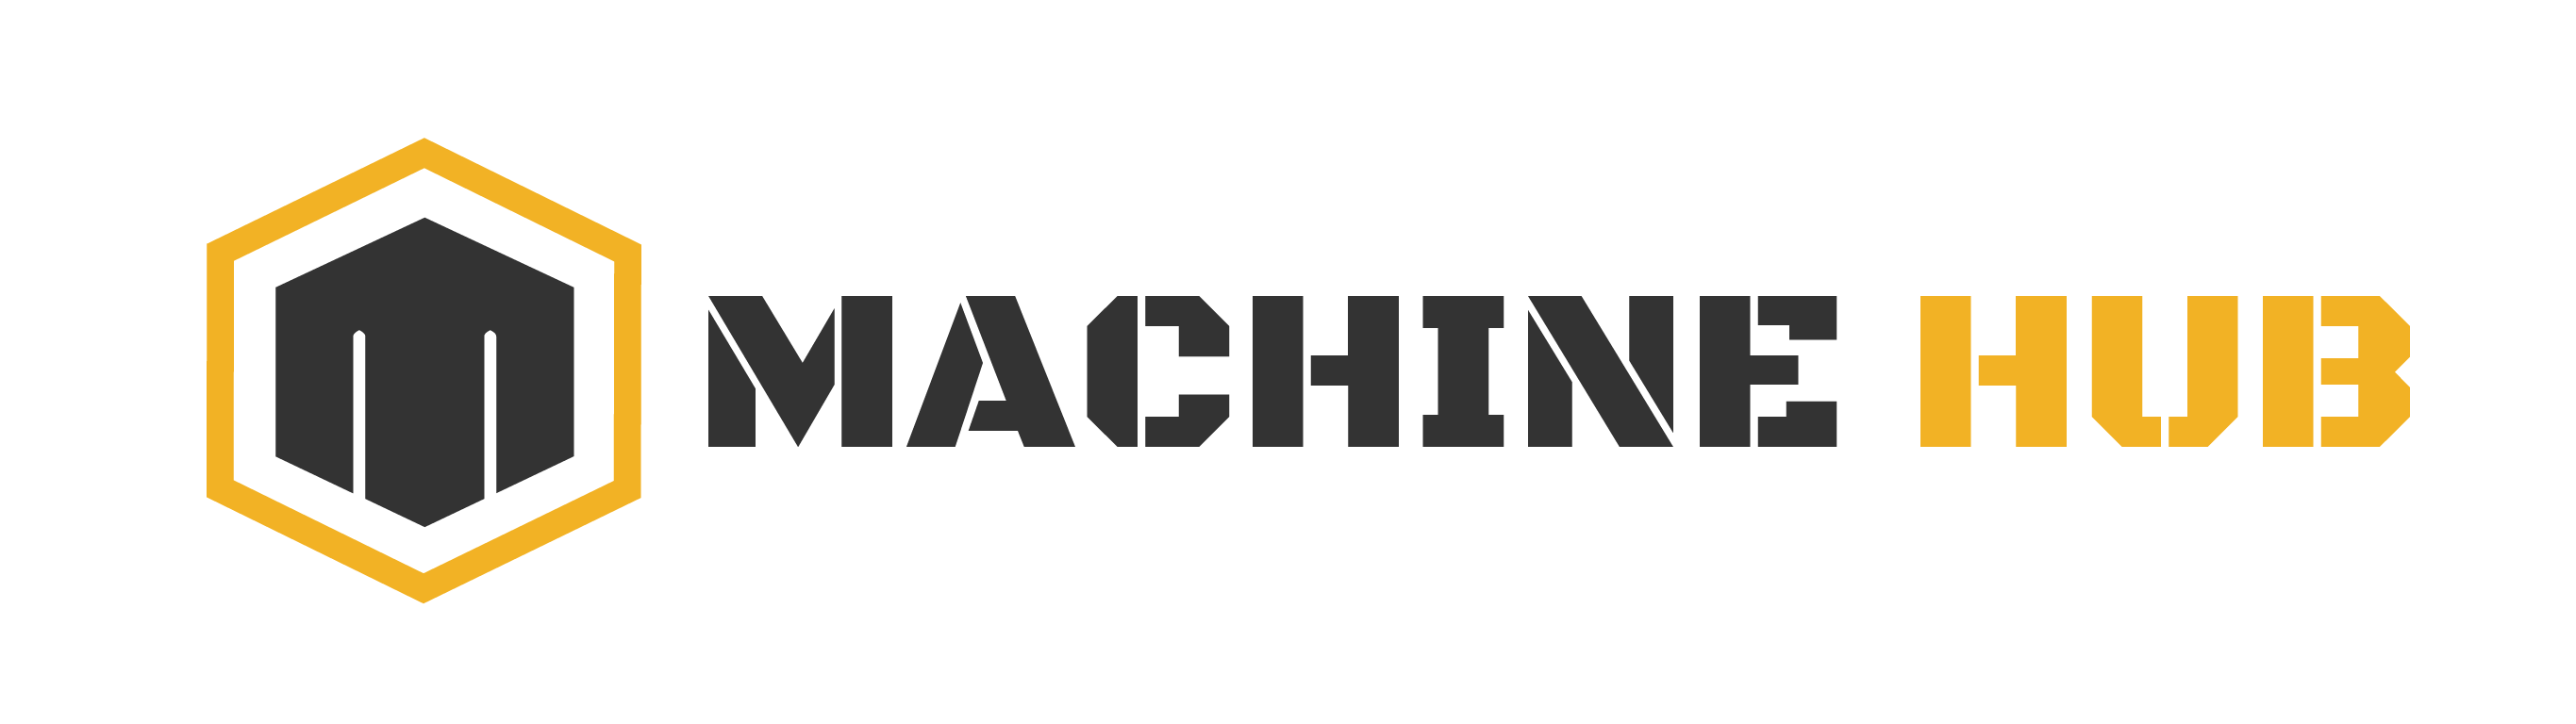 Machine Hub logo